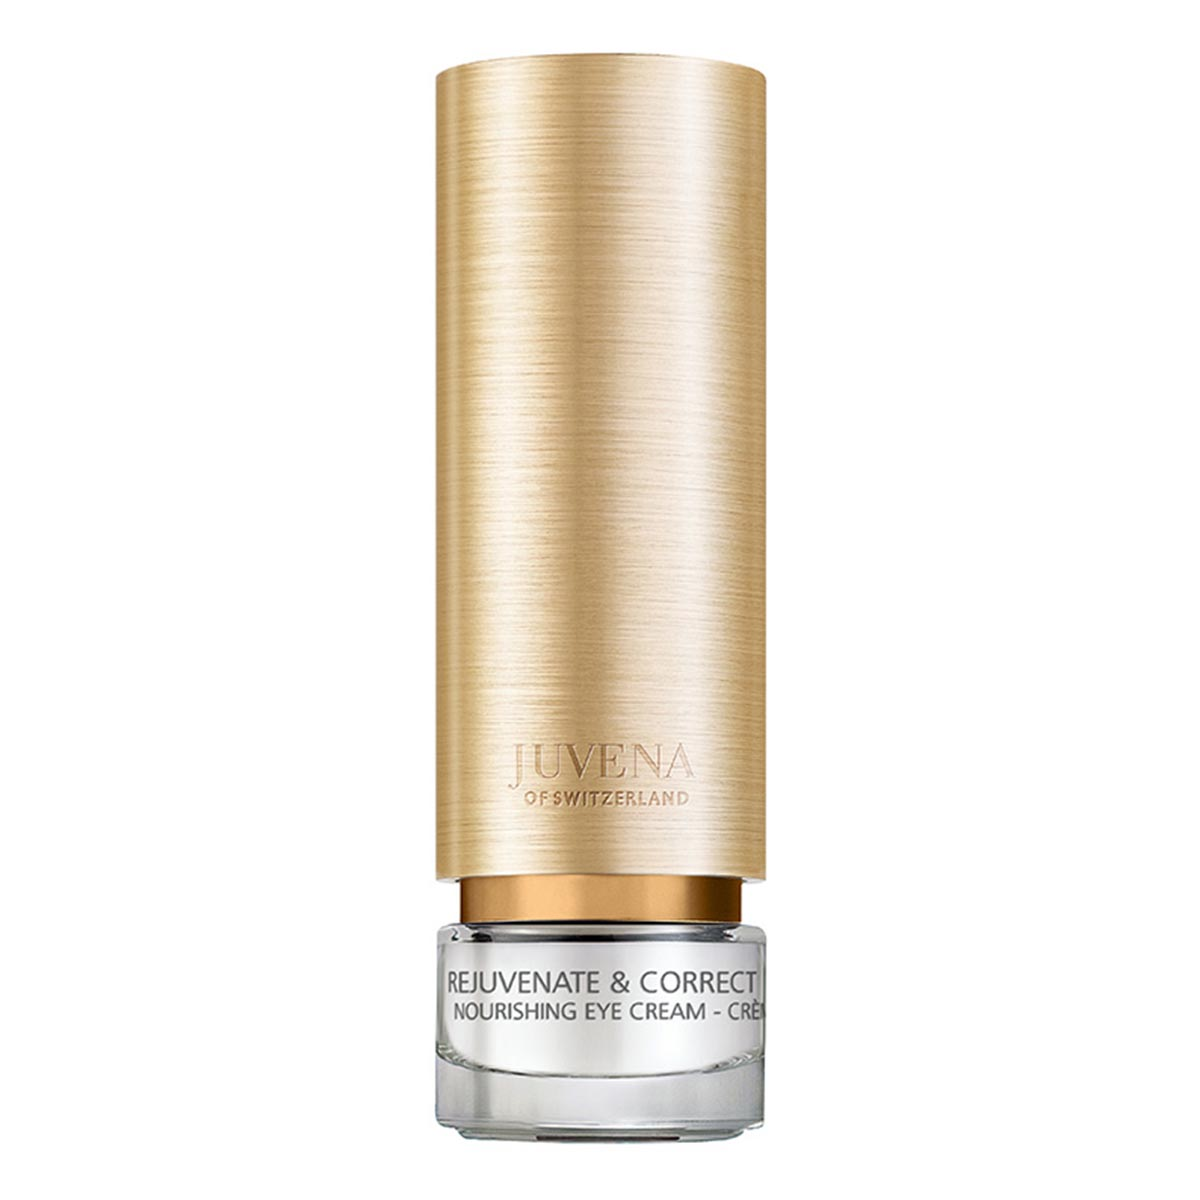 Juvena rejuvenante and correct nourishing eye cream 15ml